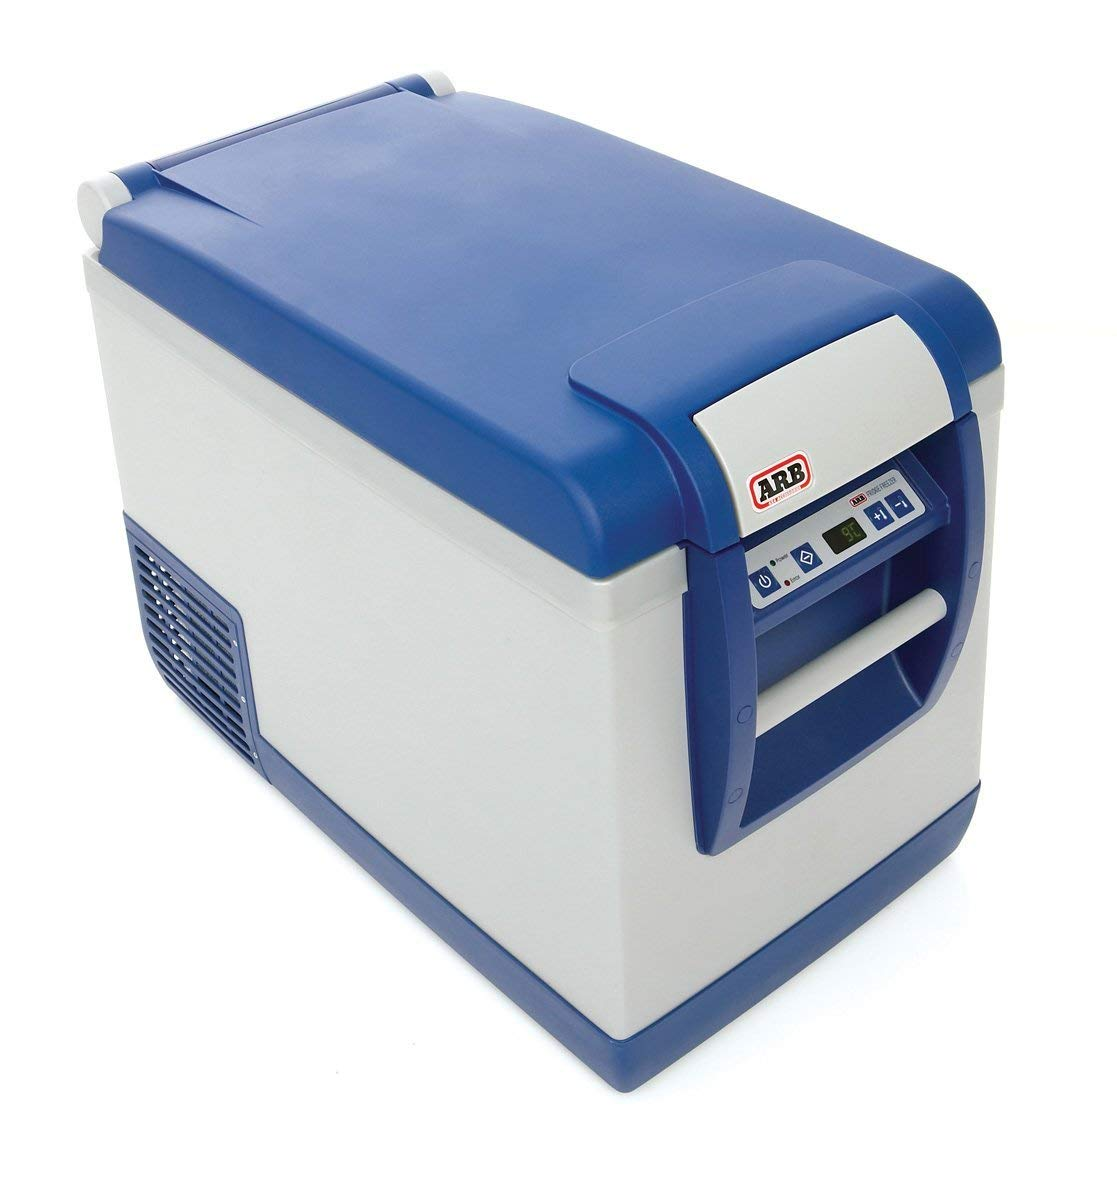 Best 12 Volt Coolers Review Buying Guide In 2020 The Drive